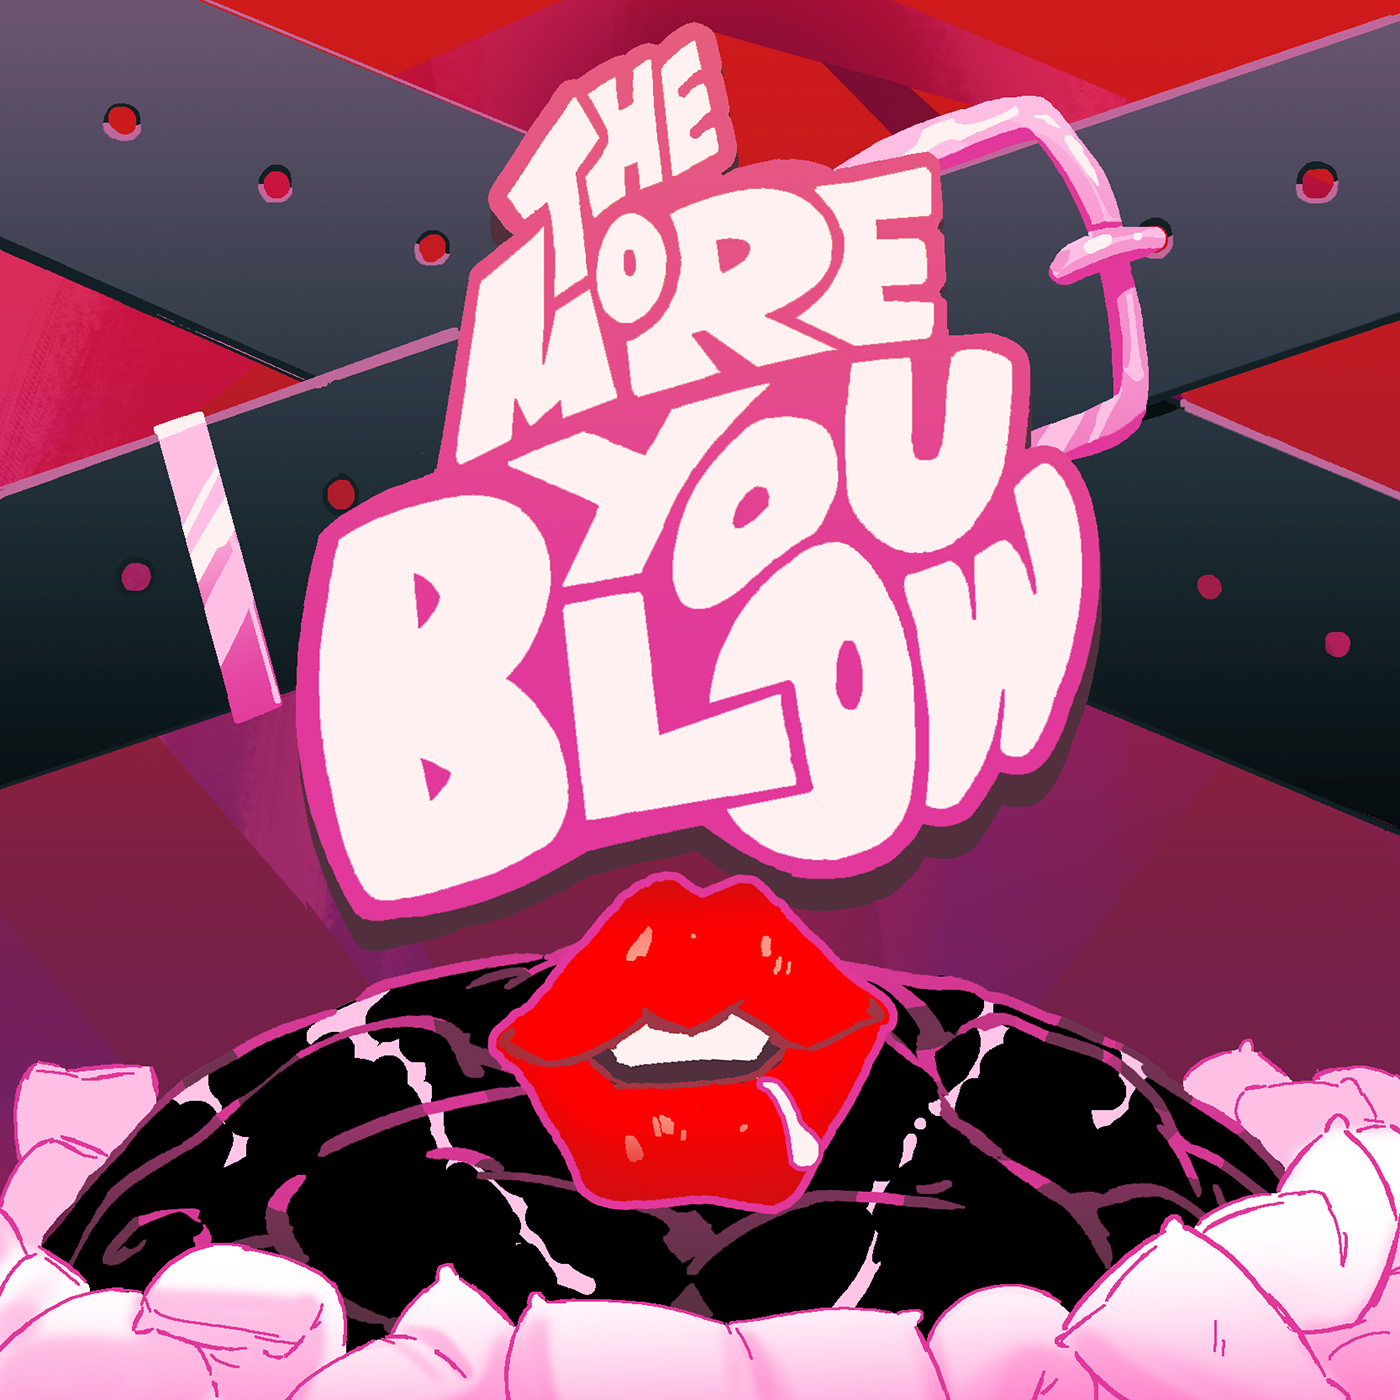 (Promo) The More You Blow Ep 1: I Knew You Weren't Gettin' A Massage